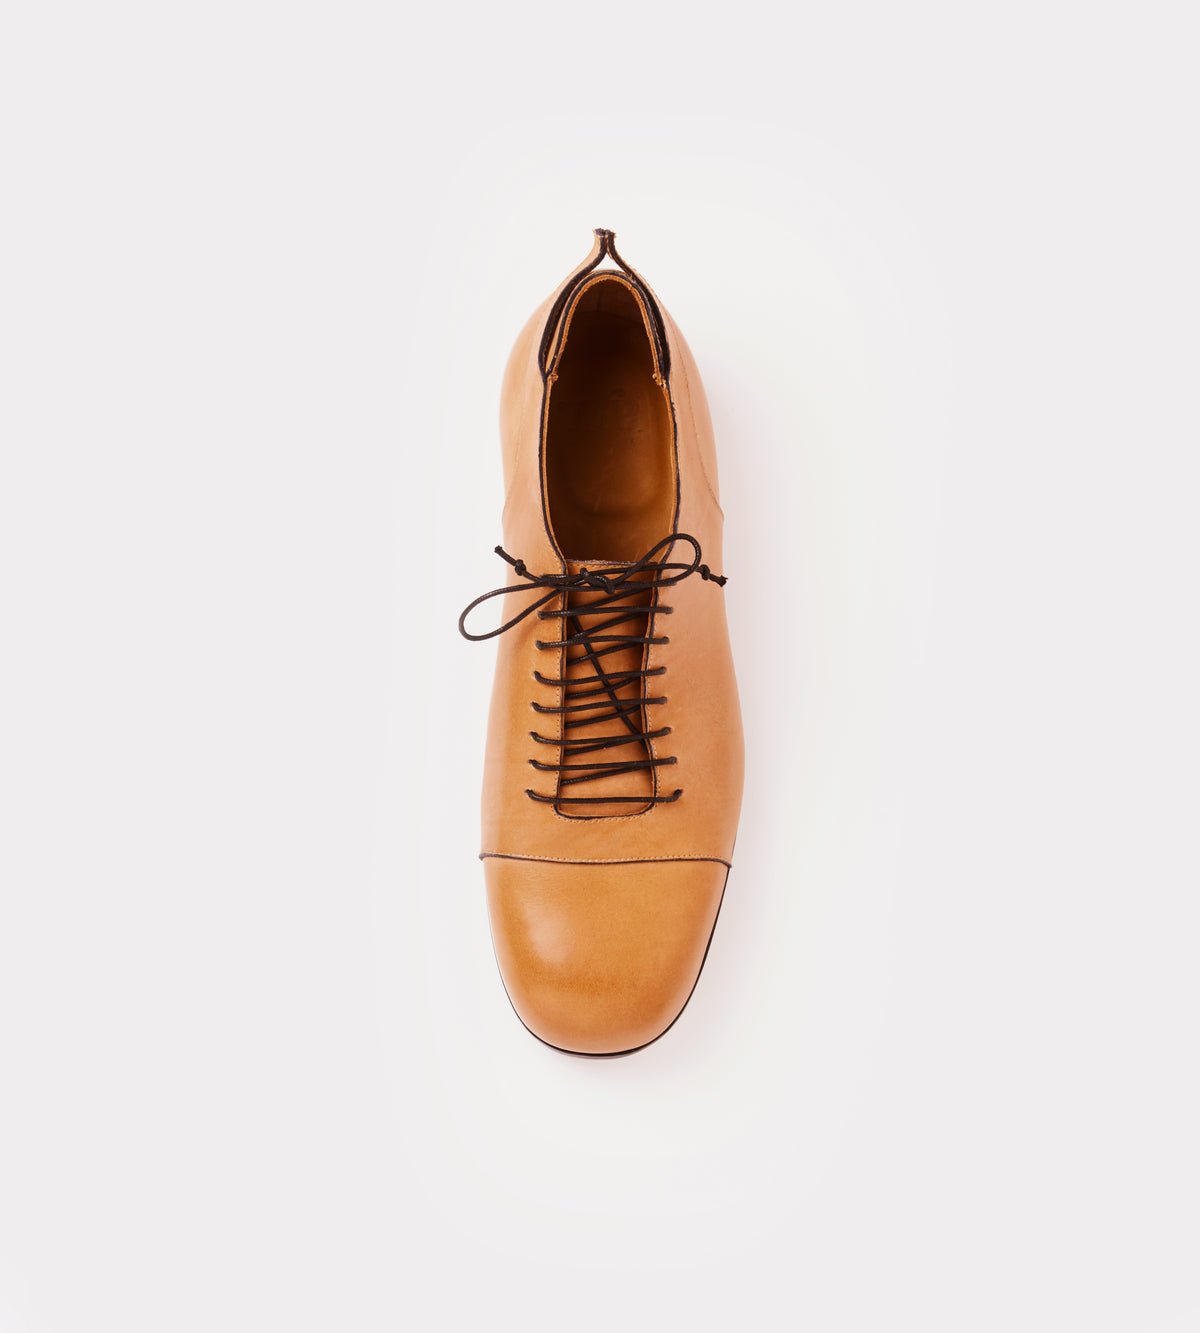 Natural leather lace up shoe top view